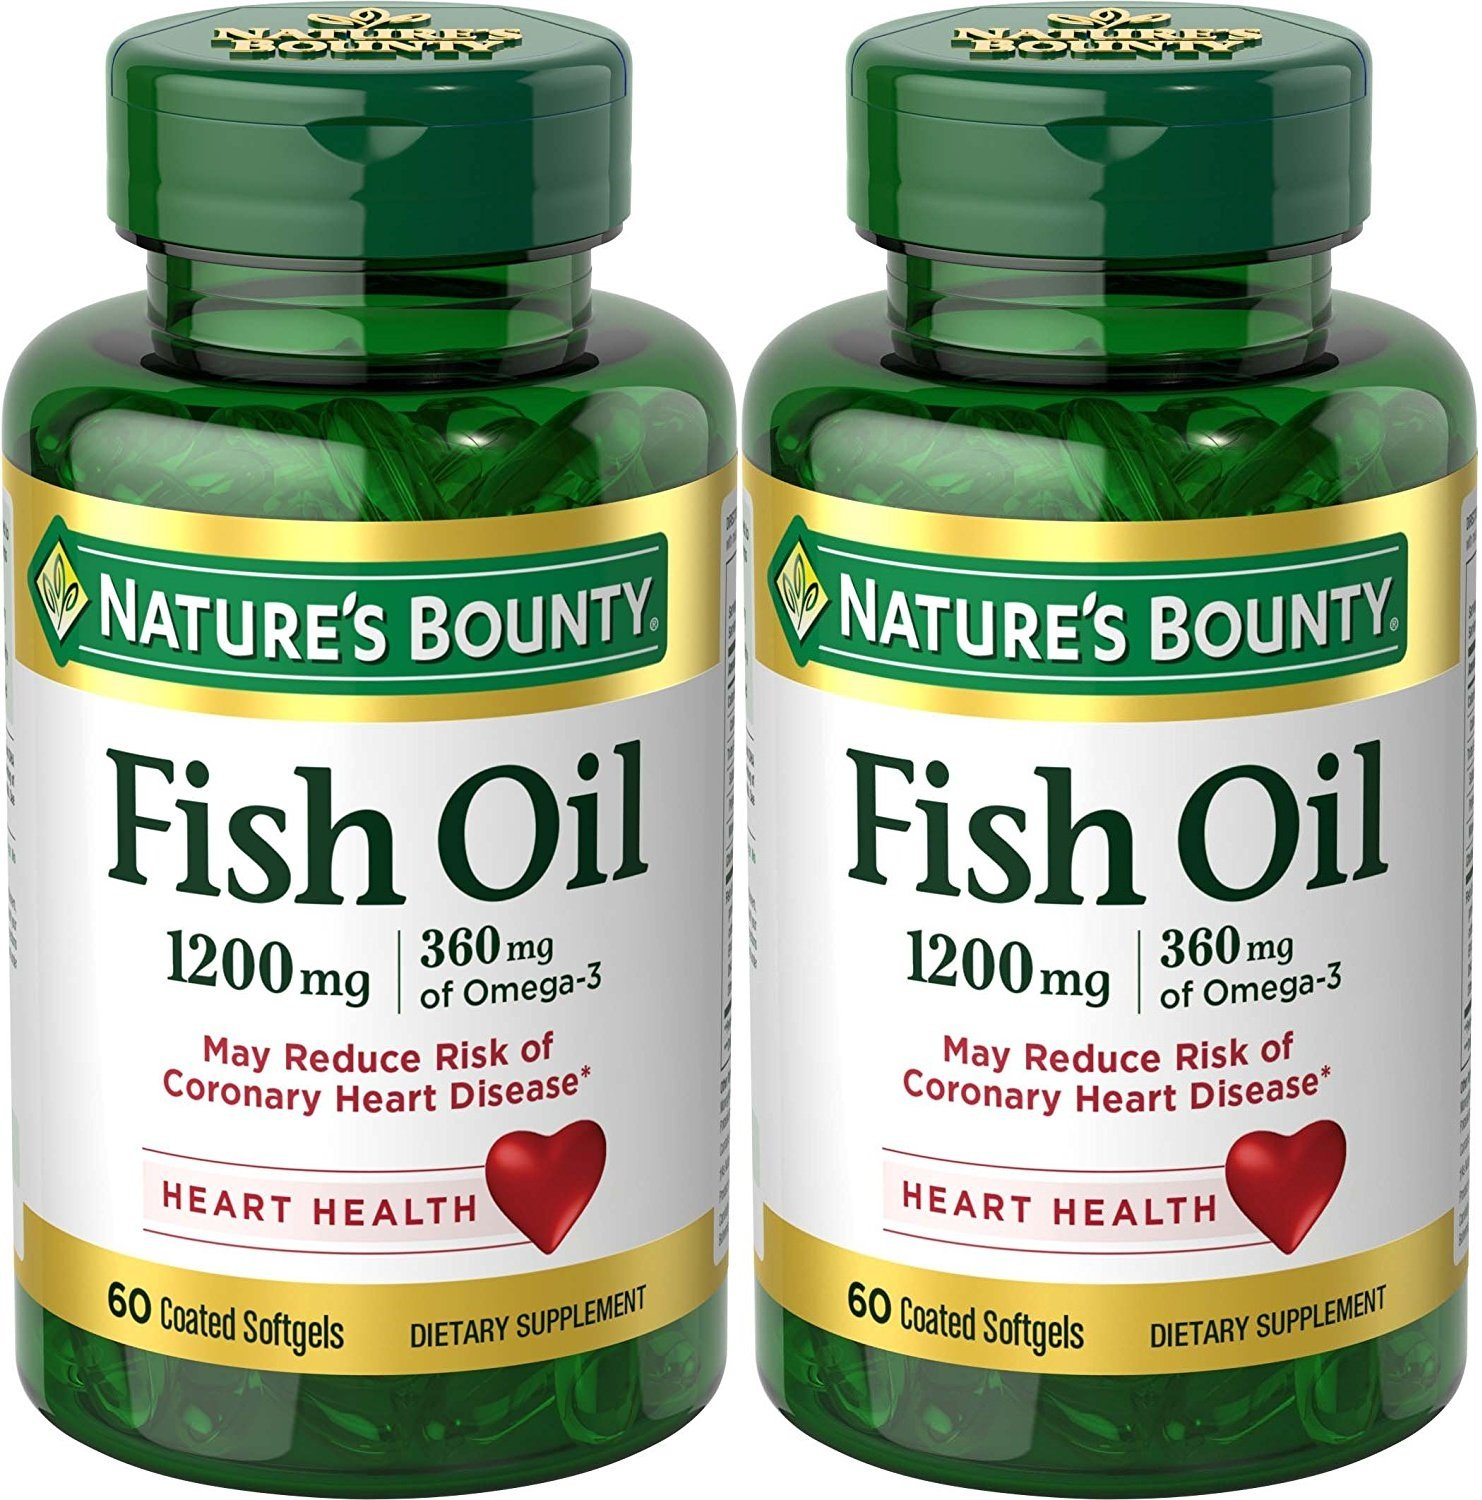 Nature's Bounty Odorless Fish Oil 1200mg, Omega 3, 120 Softgels (2 X 60 Count Bottles)